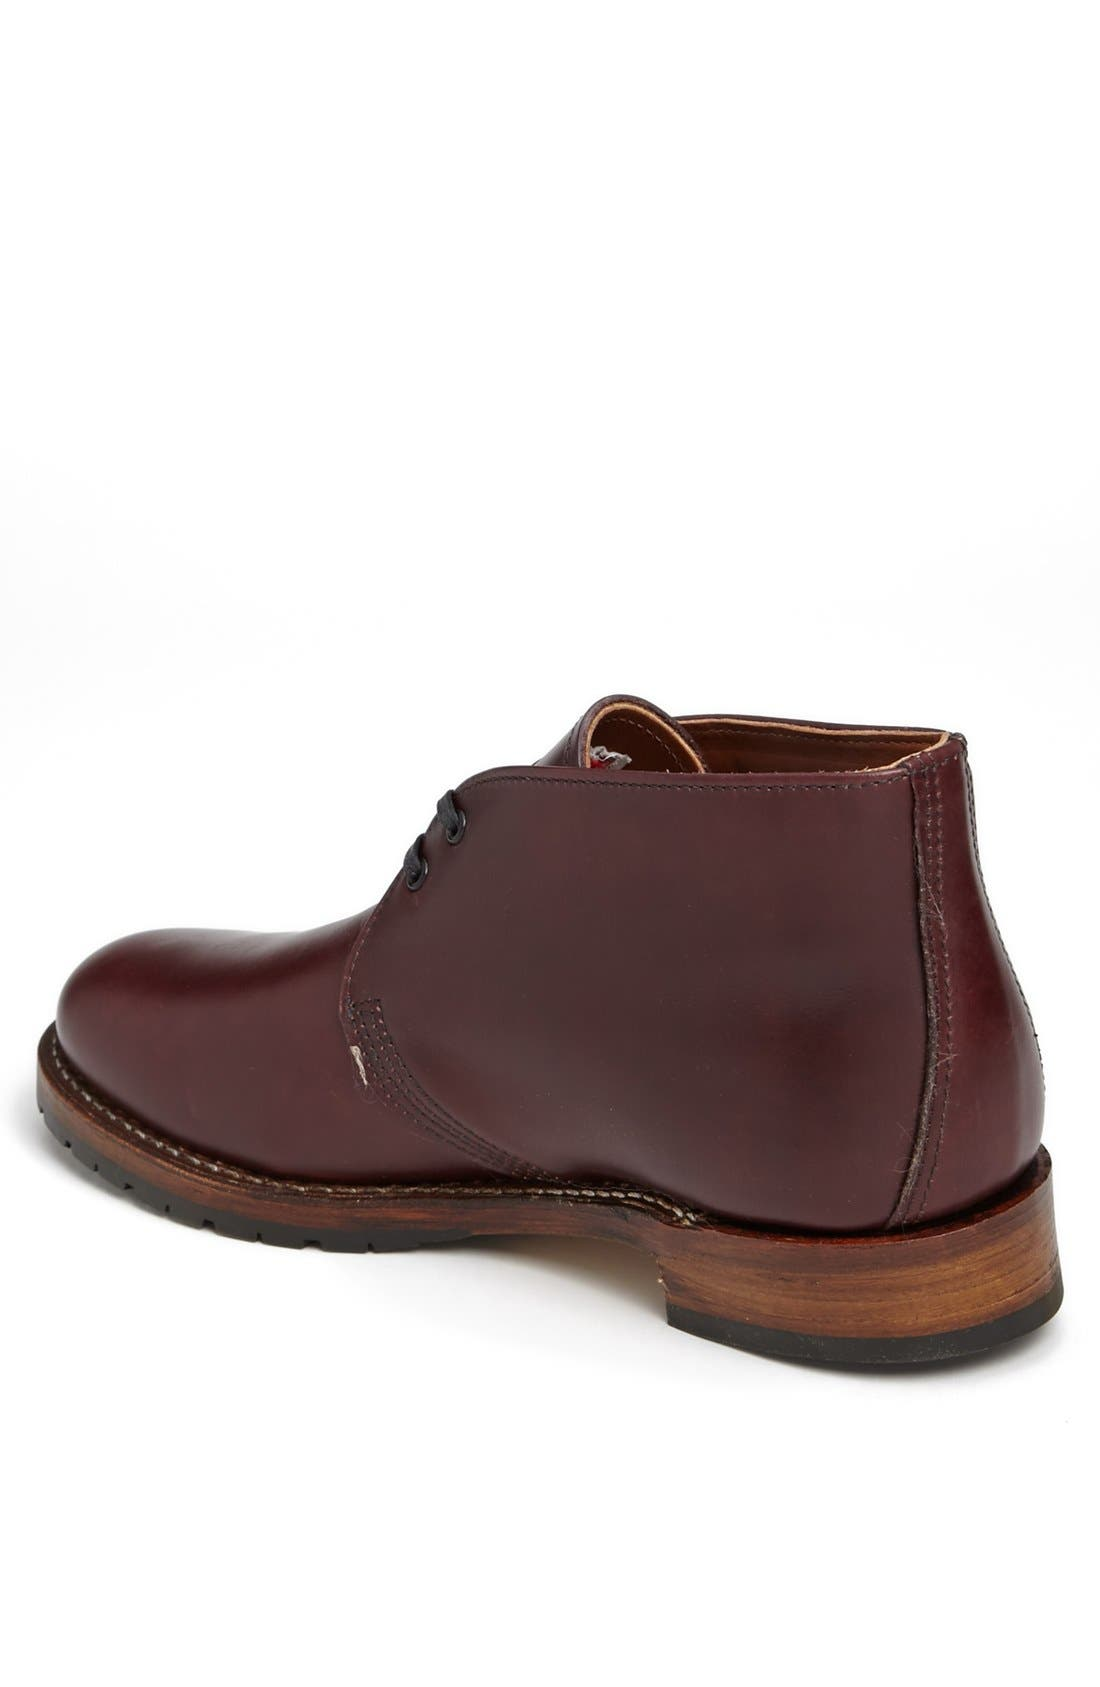 Alternate Image 2  - Red Wing 'Beckman' Chukka Boot (Online Only)